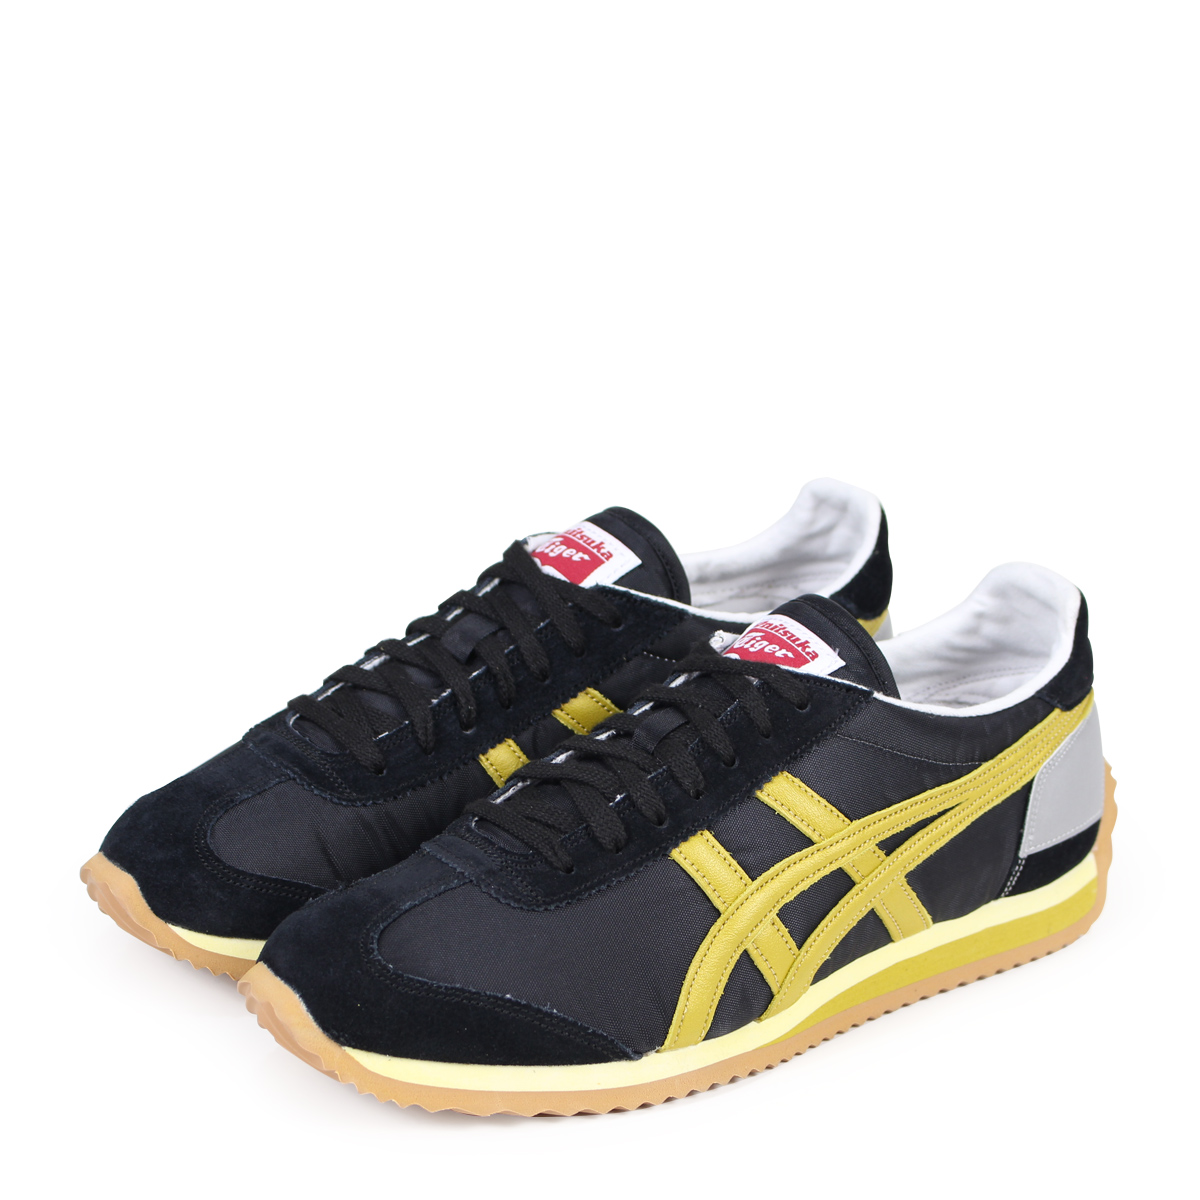 e7e4d22a78b8 Onitsuka Tiger CALIFORNIA 78 VIN Onitsuka tiger California men gap Dis  sneakers D110N-9096 TH110N-9096 black  load planned Shinnyu load in  reservation ...